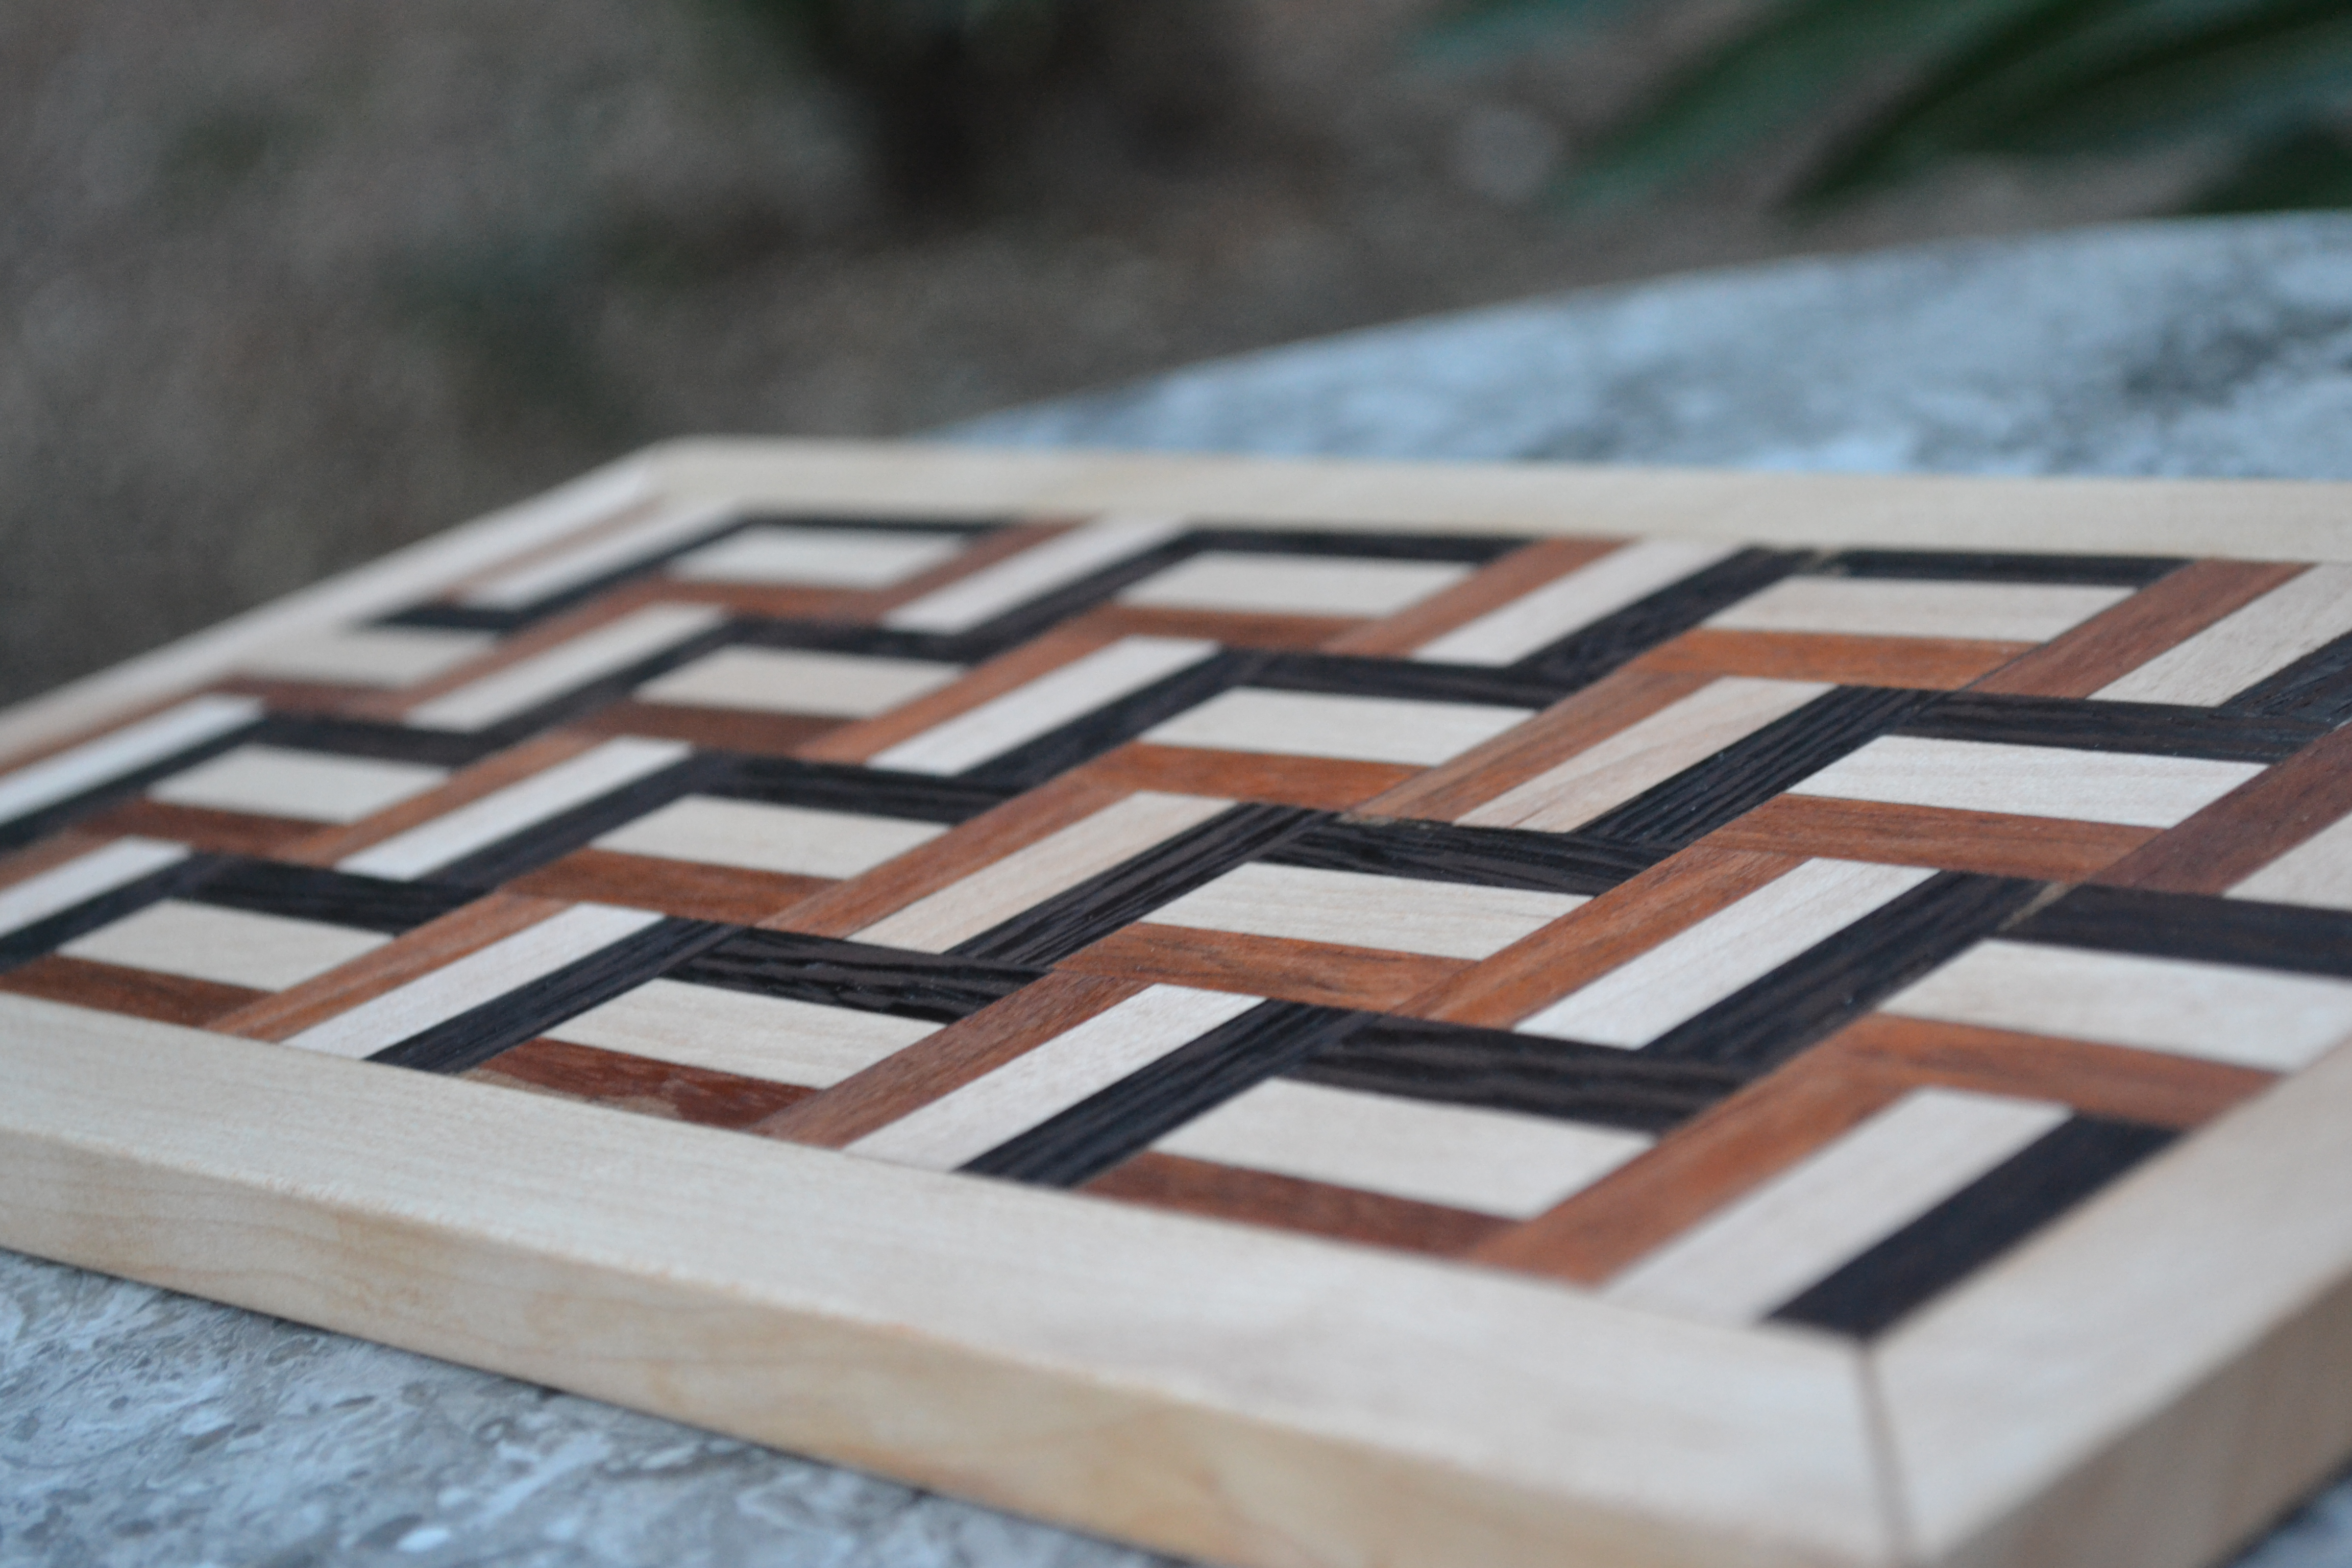 Picture of Handcrafted 100-piece Segmented Cutting Board!